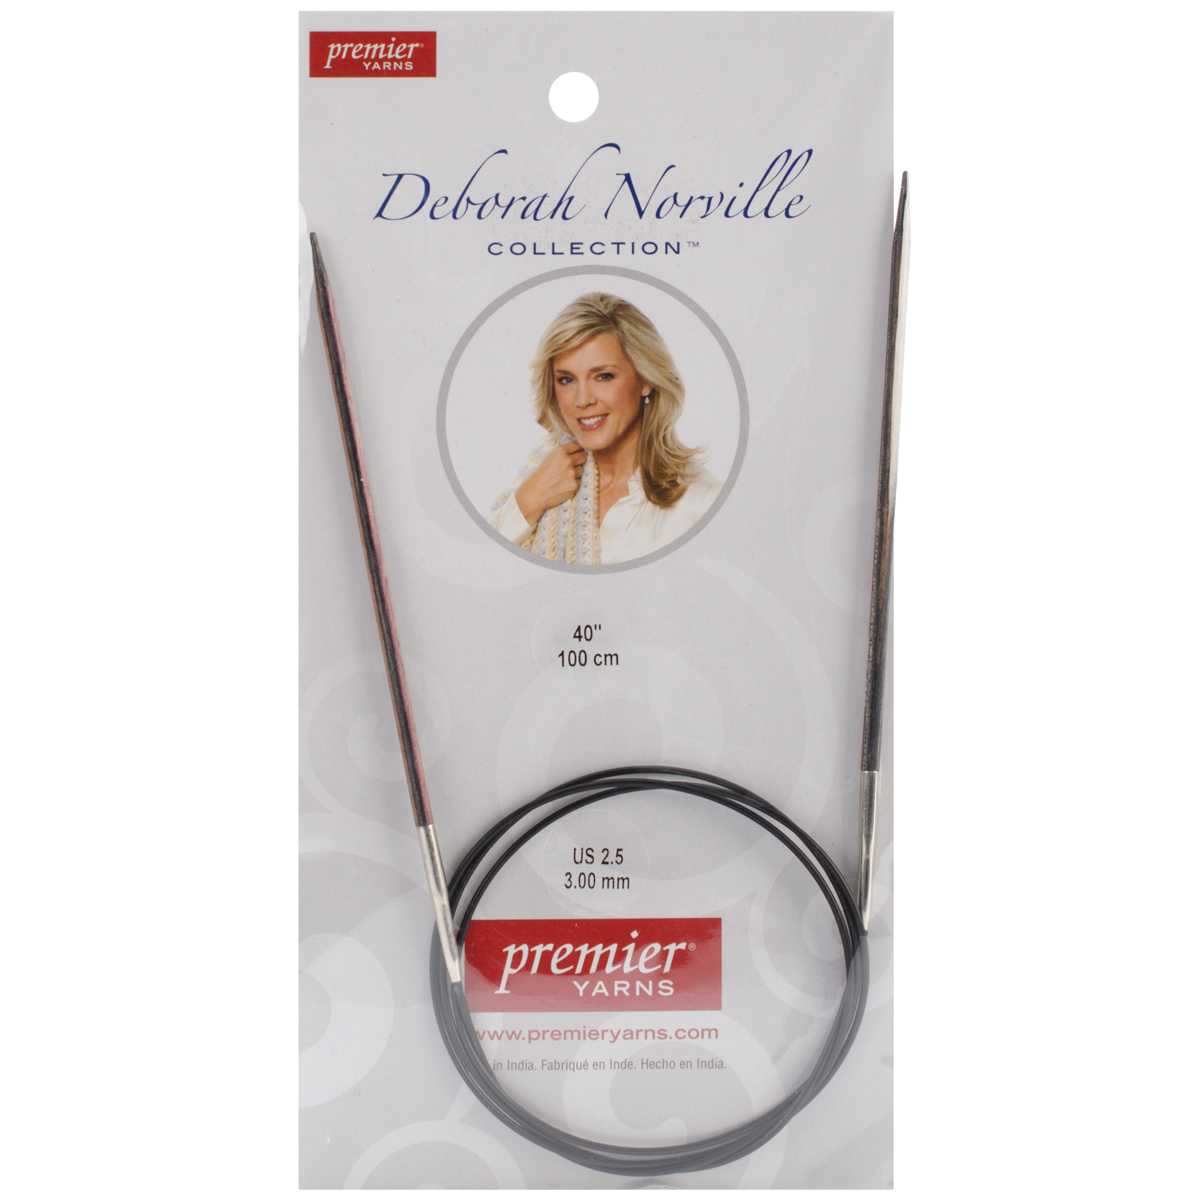 Premier Yarns Deborah Norville Fixed Circular Needles, 40-Inch, 2.5/3.0mm Multi-Colored